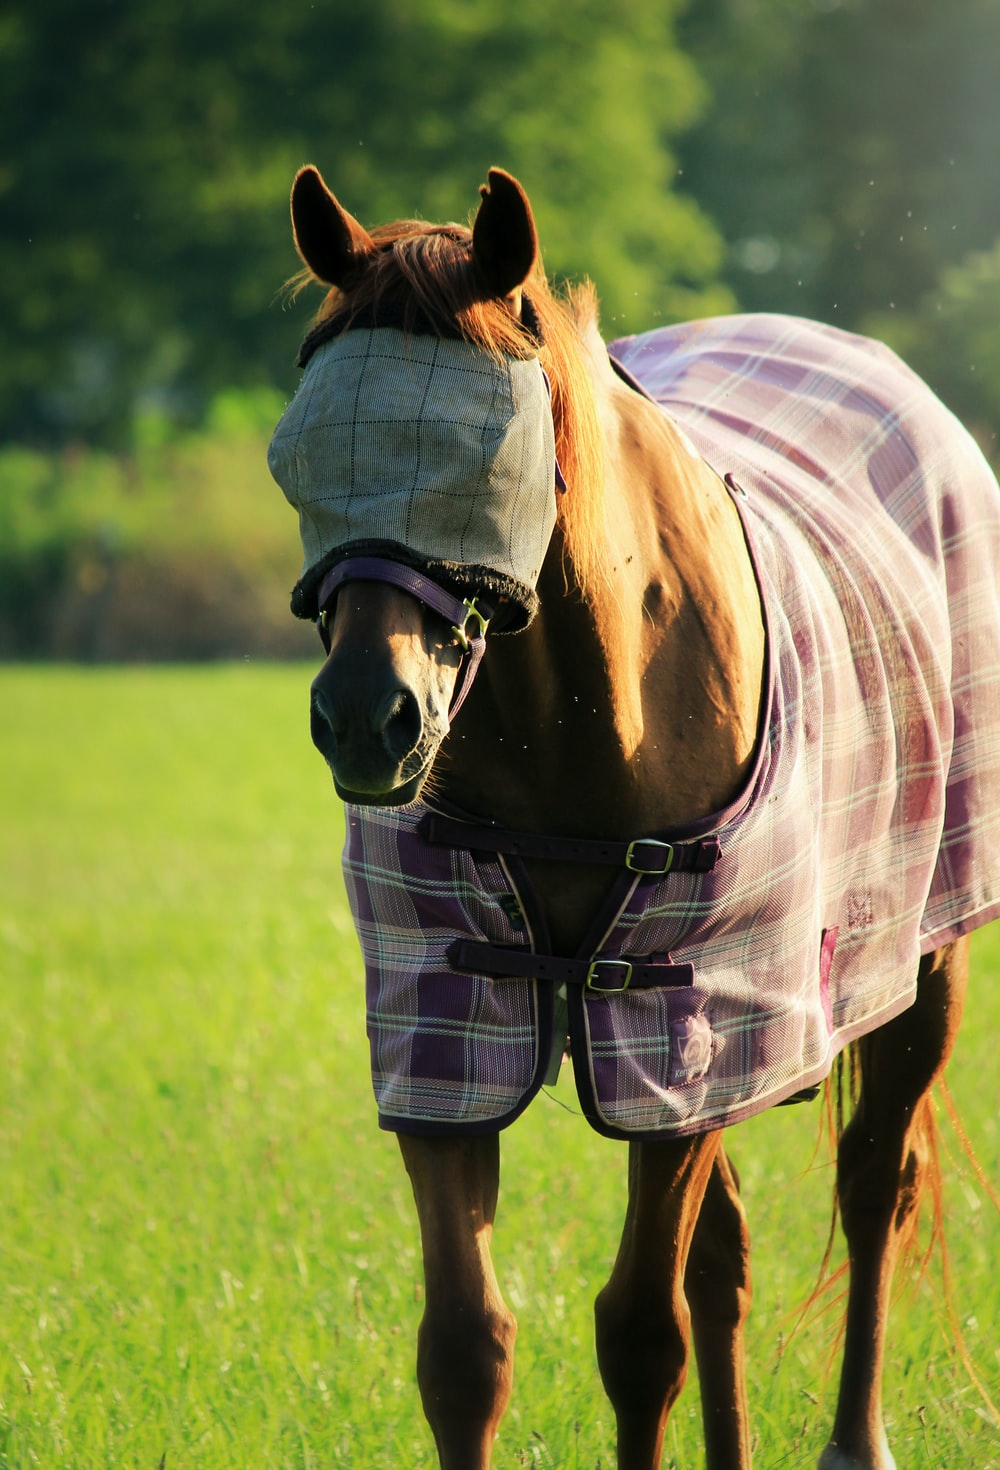 brown stallion horse with cover in eyes